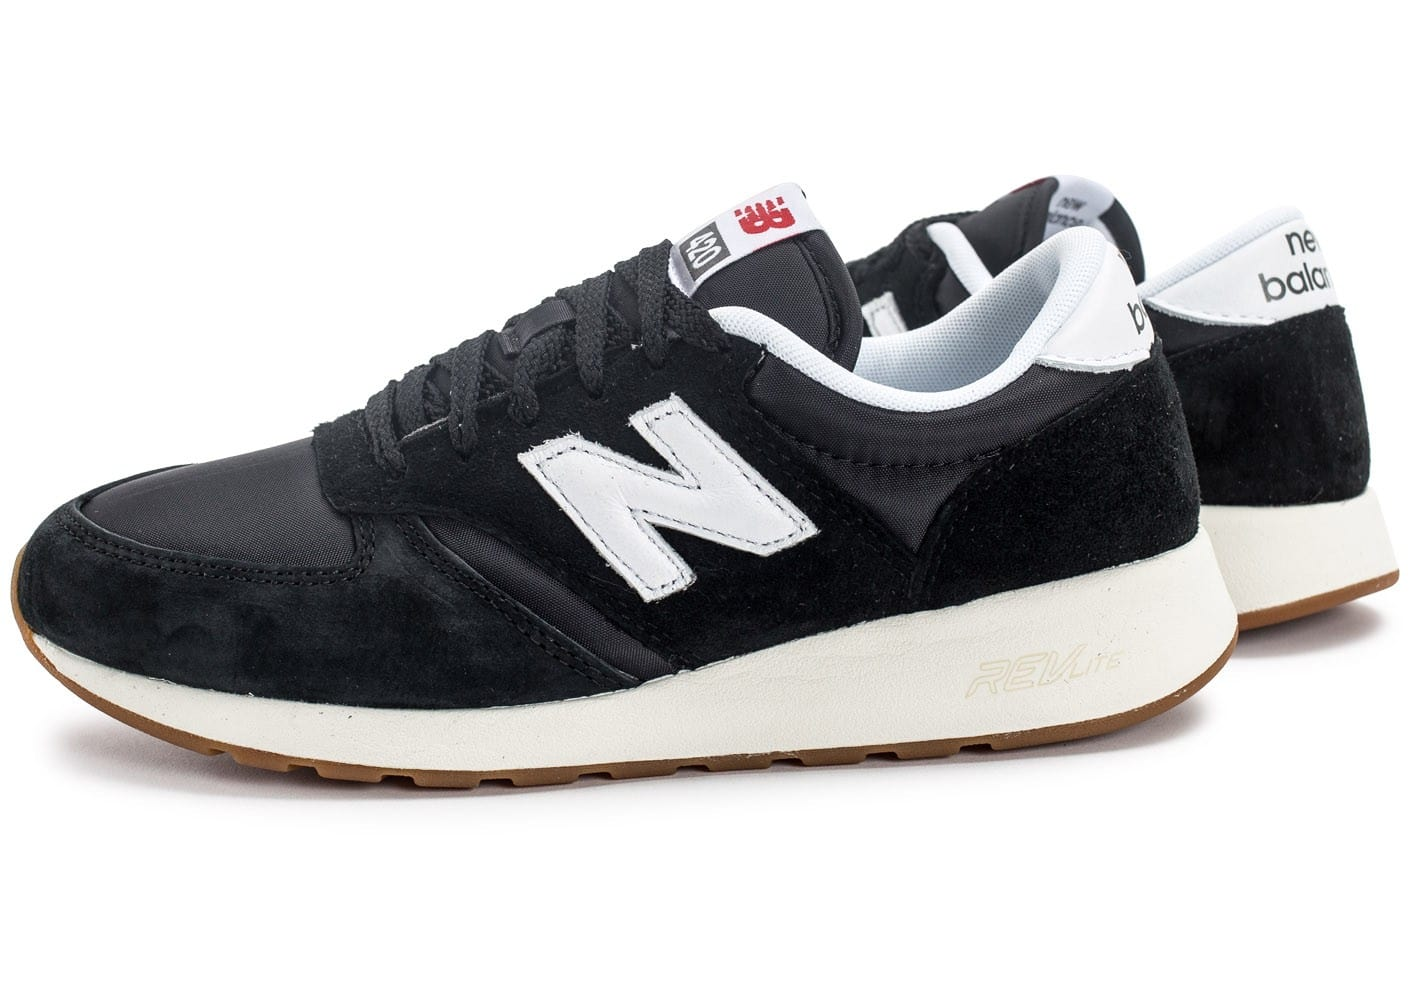 check-out fd897 aa5d9 New Balance MRL420SD noire et blanche - Chaussures Baskets ...